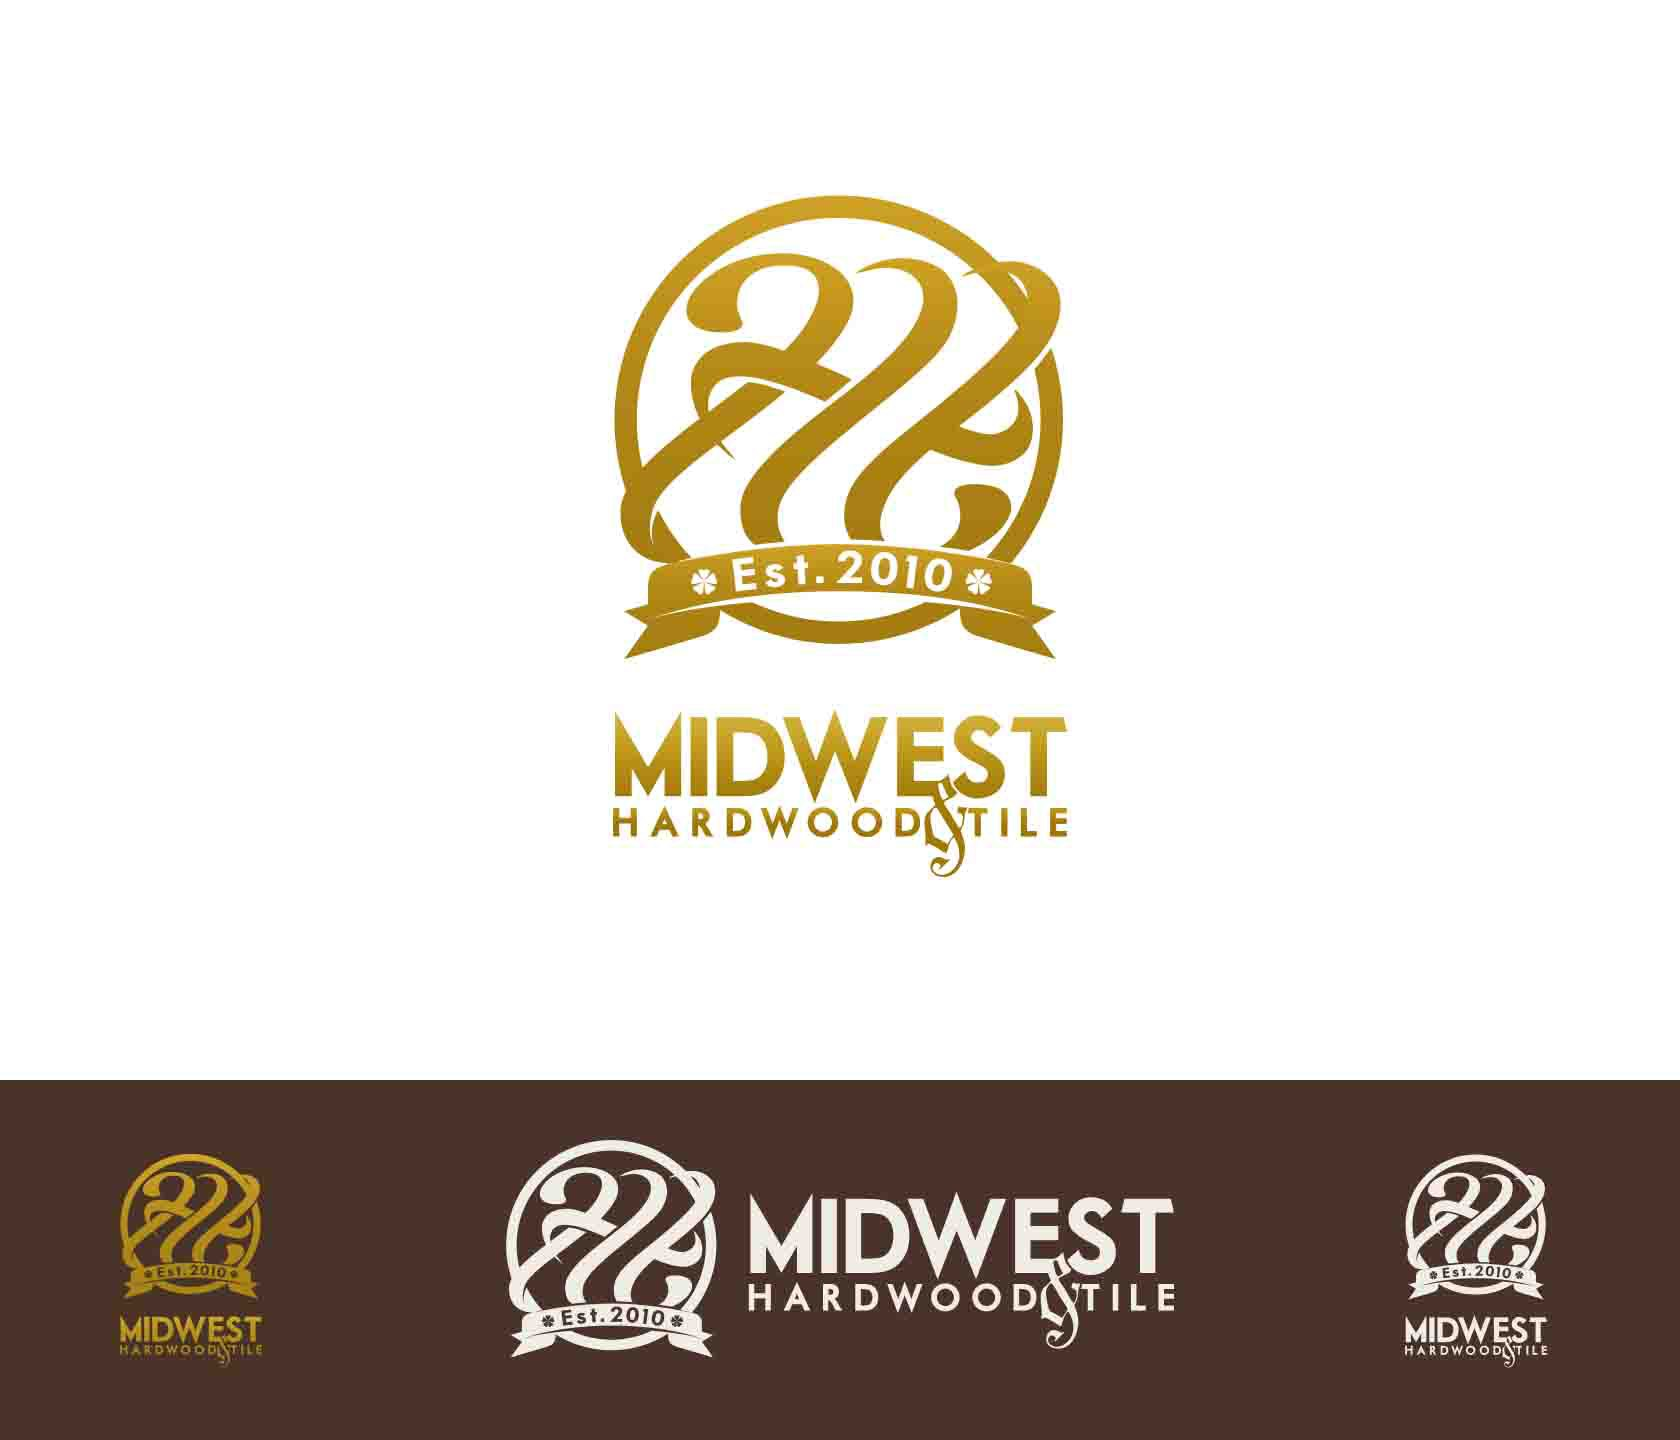 New logo wanted for Midwest Hardwood & Tile